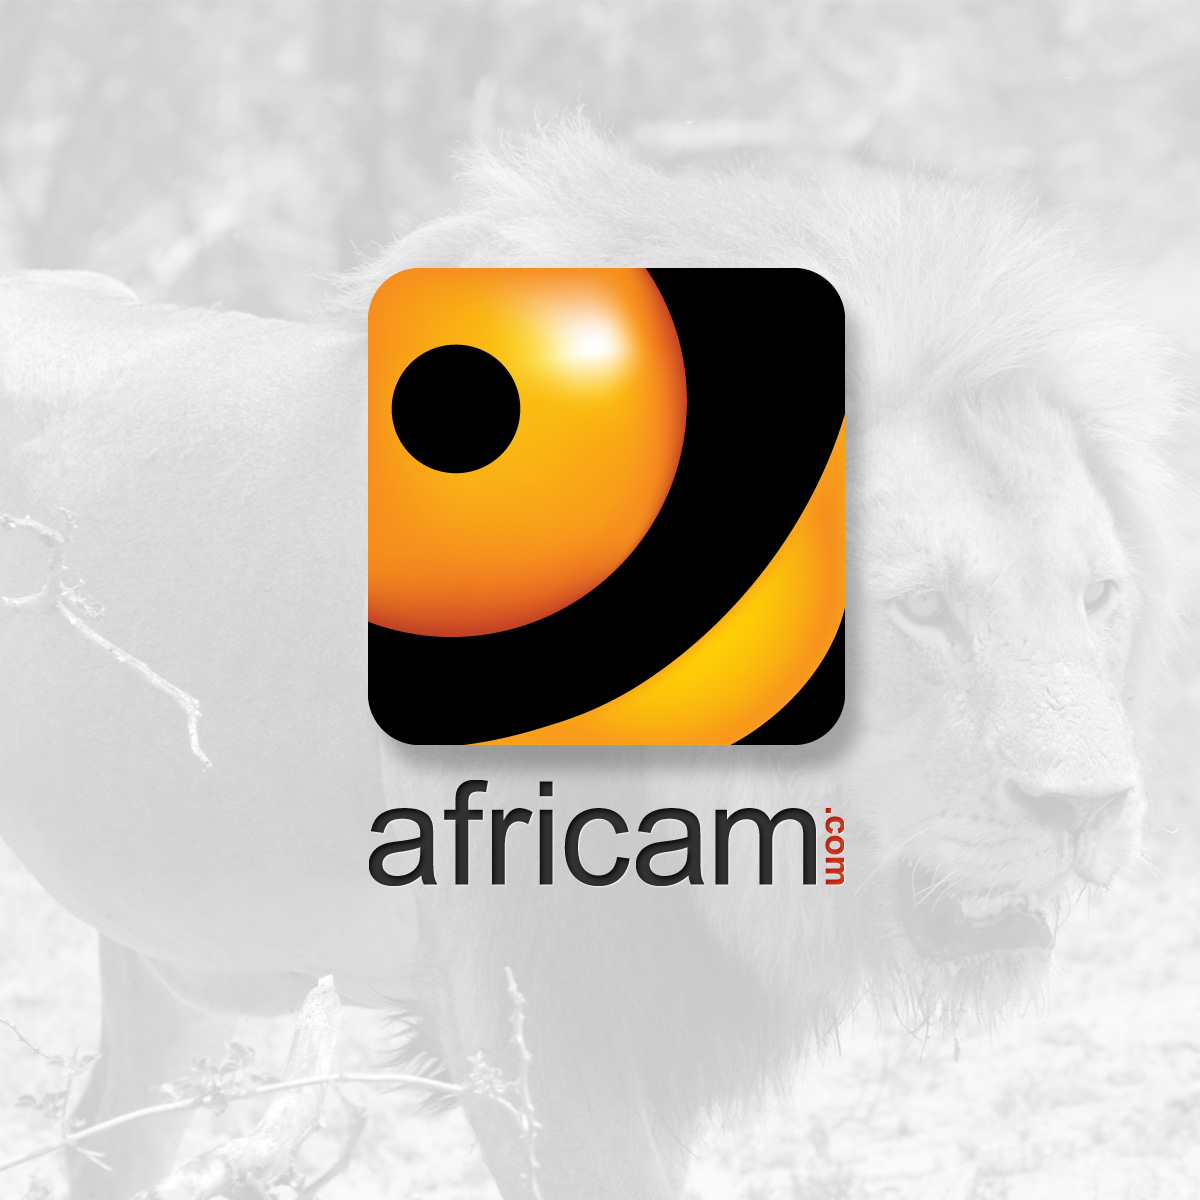 Olifants River LIVE Wildlife Channel - Africam